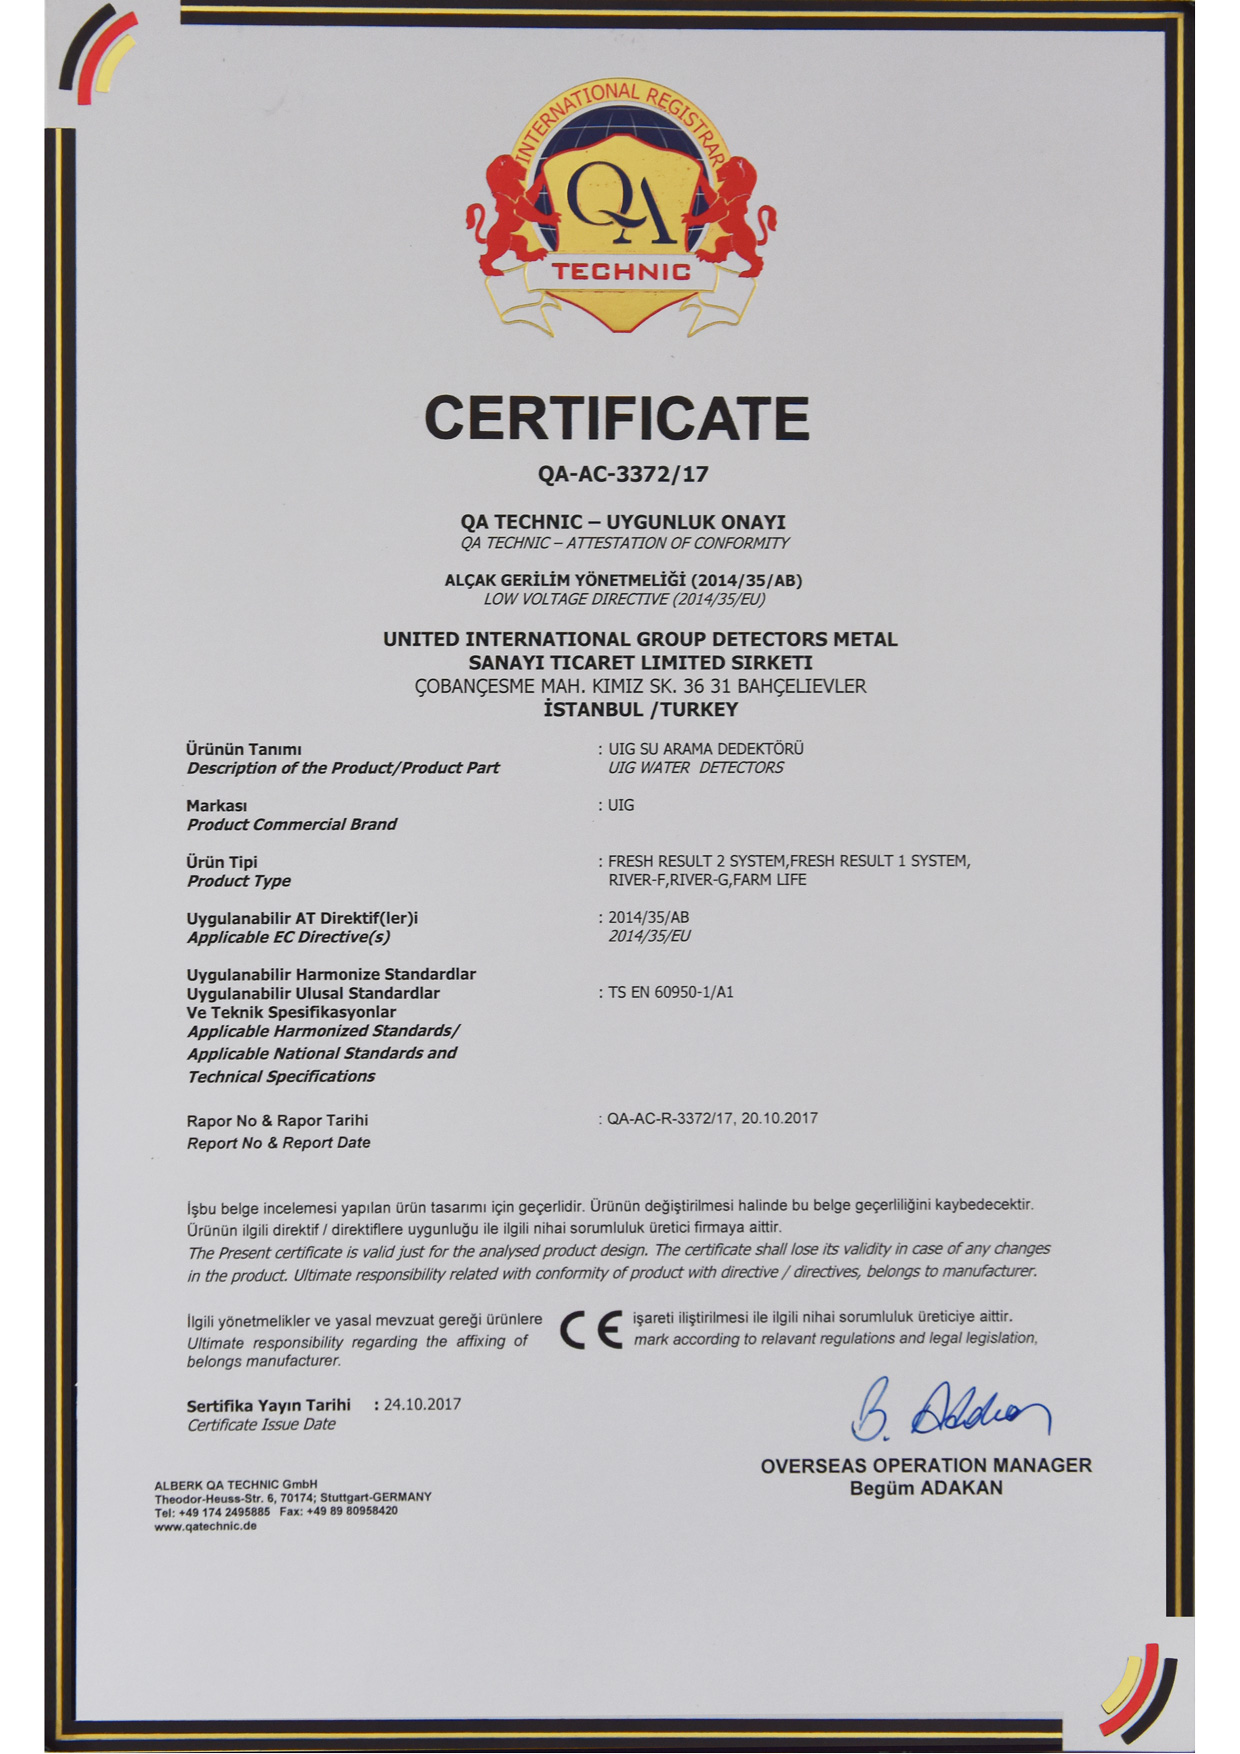 certificate-authorization-water-detectors-full